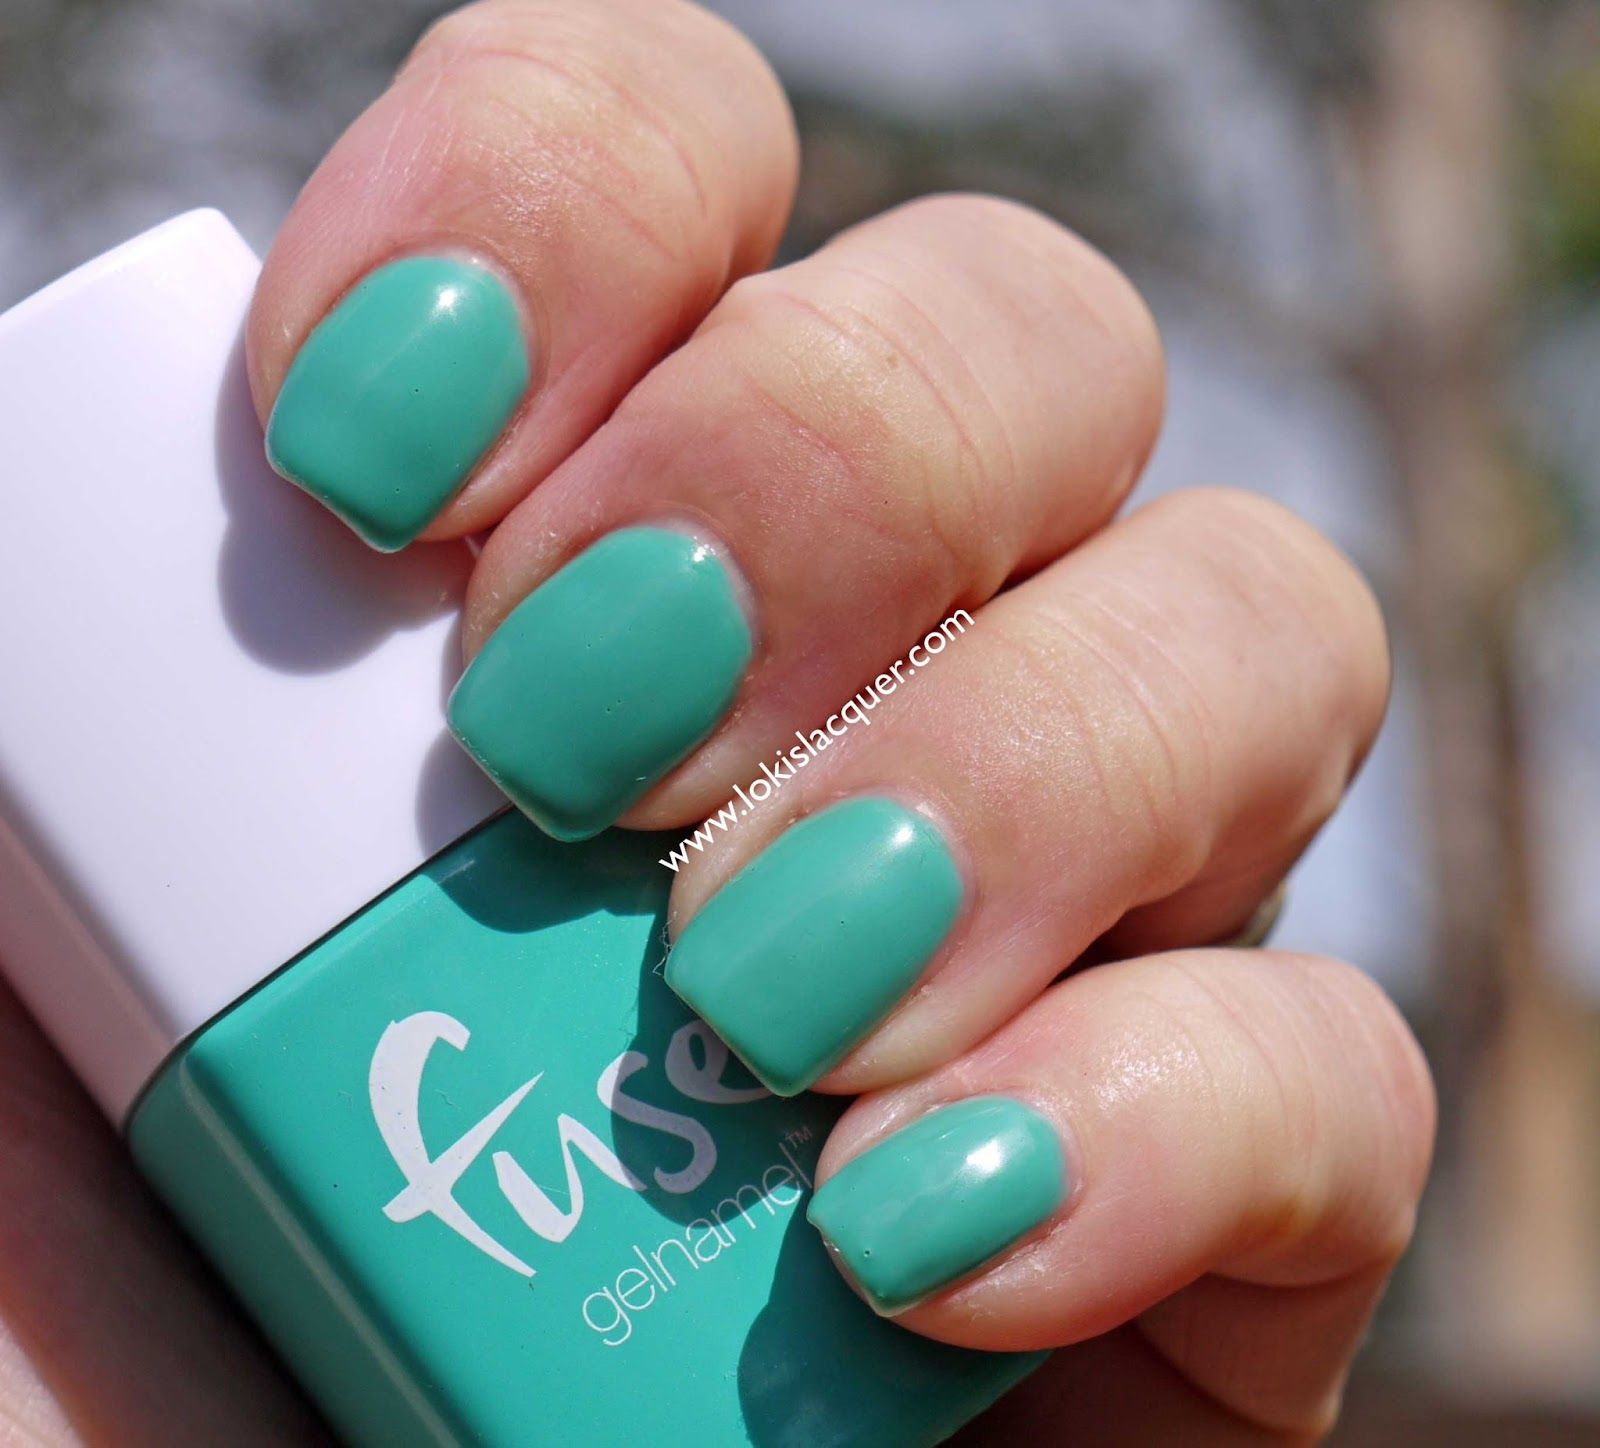 Fuse Gelnamel Swatches Part 1 intenso fly | Intens-so-fly ...